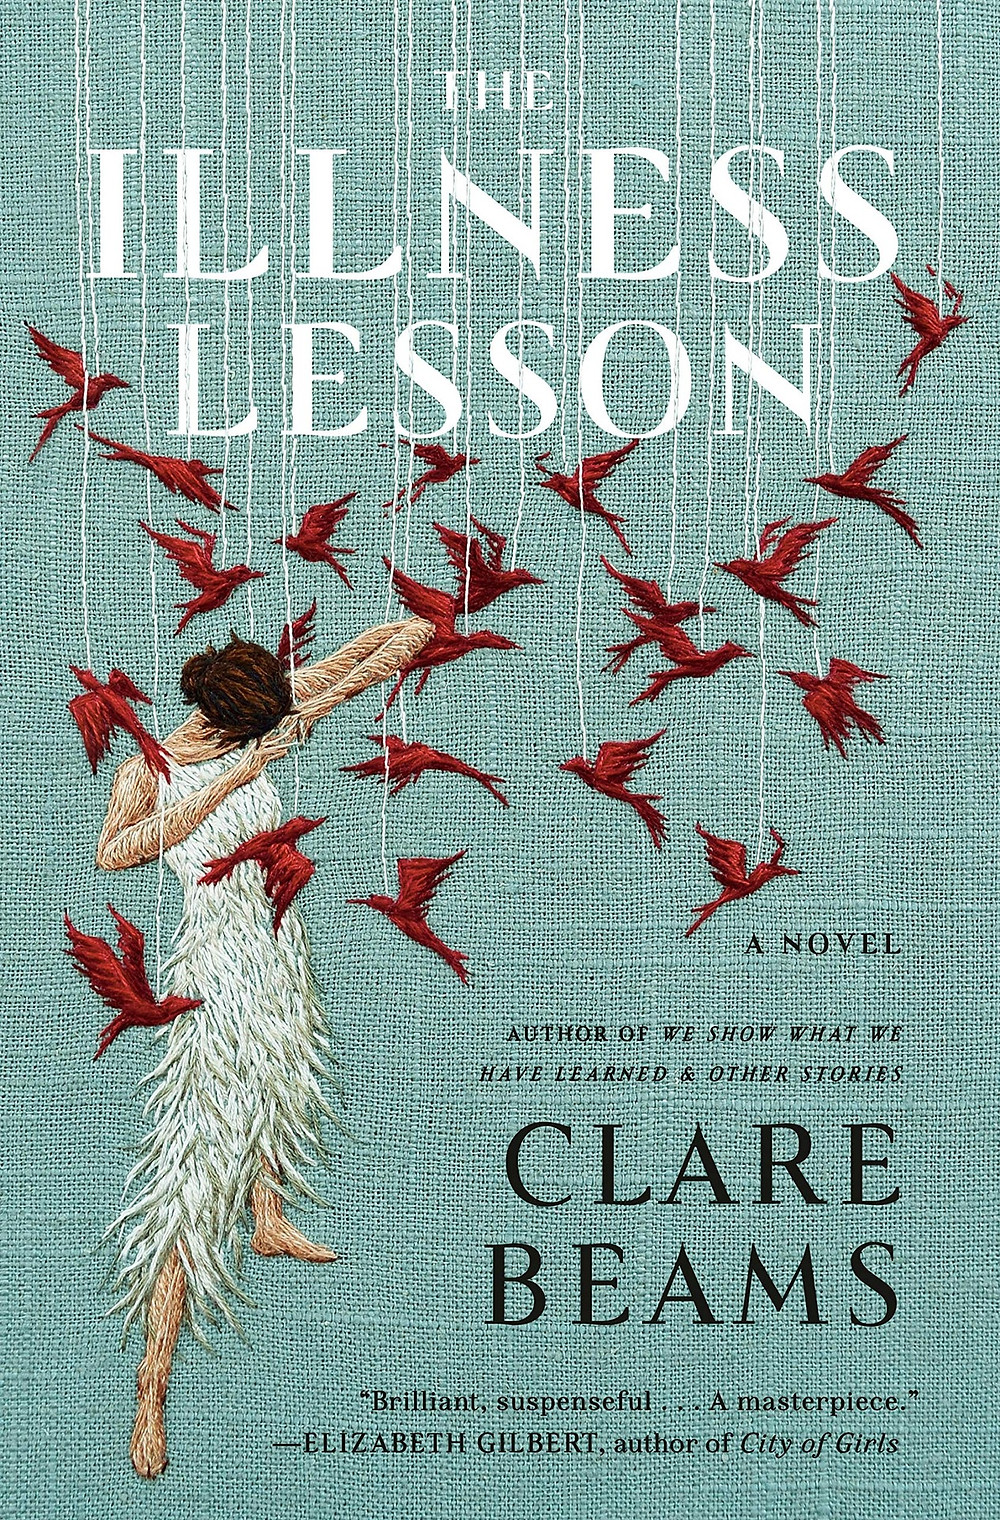 "The Illness Lesson Clare Beams, thebookslut.com Named a most anticipated book of 2020 by Time, Vanity Fair, Esquire, O Magazine, Entertainment Weekly, Bustle, BookRiot, Domino, and LitHub ""Brilliant, suspenseful...A masterpiece.""--Elizabeth Gilbert, author of City of Girls At their newly founded school, Samuel Hood and his daughter Caroline promise a groundbreaking education for young women. But Caroline has grave misgivings. After all, her own unconventional education has left her unmarriageable and isolated, unsuited to the narrow roles afforded women in 19th century New England. When a mysterious flock of red birds descends on the town, Caroline alone seems to find them unsettling. But it's not long before the assembled students begin to manifest bizarre symptoms: Rashes, seizures, headaches, verbal tics, night wanderings. One by one, they sicken. Fearing ruin for the school, Samuel overrules Caroline's pleas to inform the girls' parents and turns instead to a noted physician, a man whose sinister ministrations--based on a shocking historic treatment--horrify Caroline. As the men around her continue to dictate, disastrously, all terms of the girls' experience, Caroline's body too begins to betray her. To save herself and her young charges, she will have to defy every rule that has governed her life, her mind, her body, and her world. Clare Beams's extraordinary debut story collection We Show What We Have Learned earned comparisons to Shirley Jackson, Karen Russell and Aimee Bender, and established Beams as a writer who ""creates magical-realist pieces that often calculate the high cost of being a woman"" (The Rumpus). Precisely observed, hauntingly atmospheric, as fiercely defiant as it is triumphant, The Illness Lesson is a spellbinding piece of storytelling. thebookslut book reviews.Publisher: Doubleday Books Published Date: February 11, 2020 Pages: 288 Dimensions: 6.4 X 1.1 X 9.5 inches 